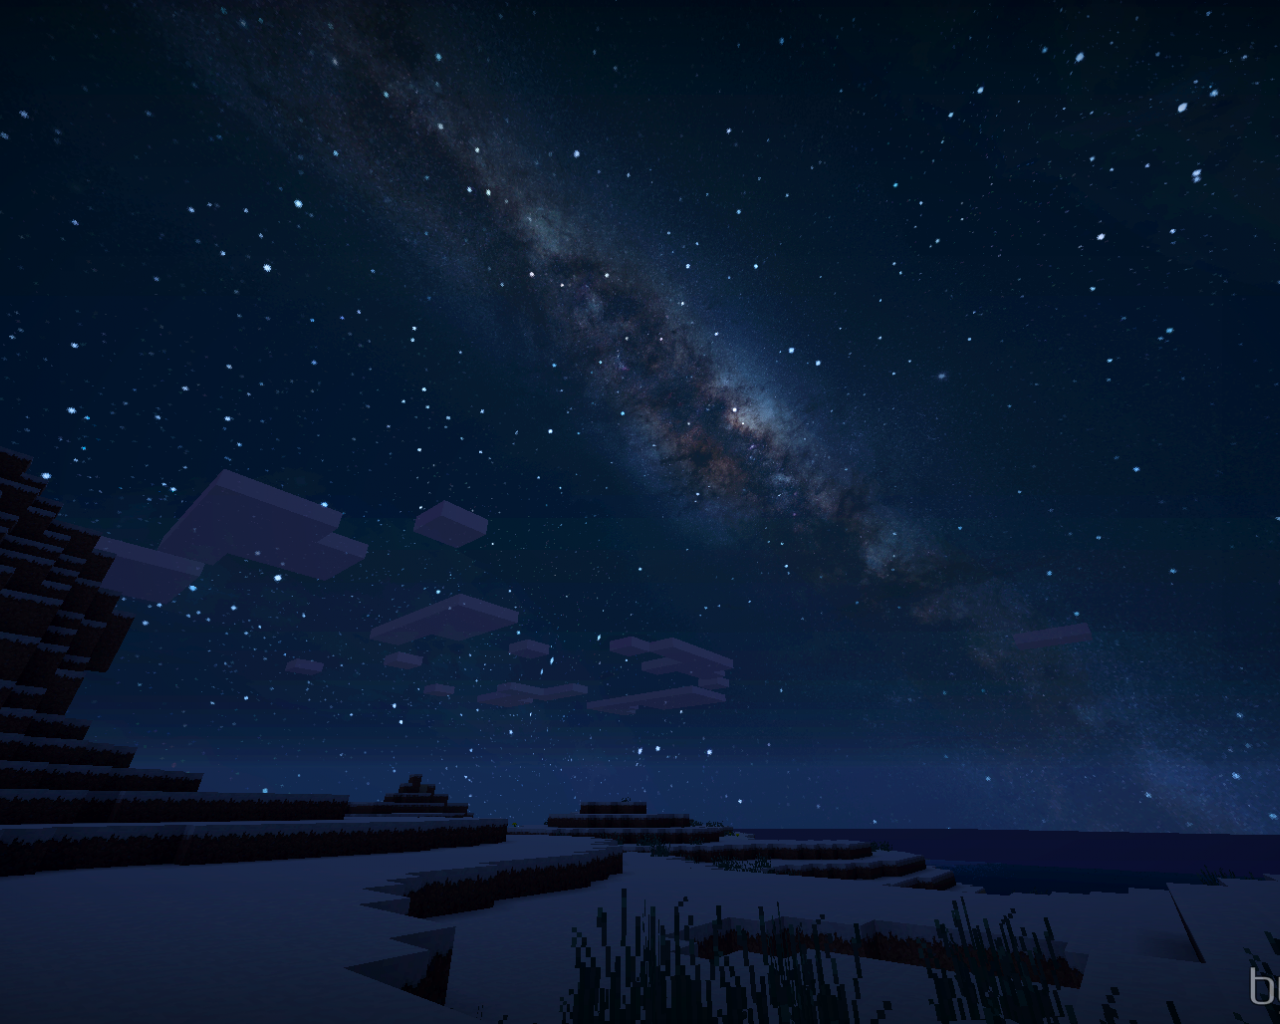 Free Download Beauty Of Minecraft At Night Background Minecraft 1680x1028 For Your Desktop Mobile Tablet Explore 30 Minecraft Space Background Minecraft Space Background Minecraft Background Wallpapers Minecraft